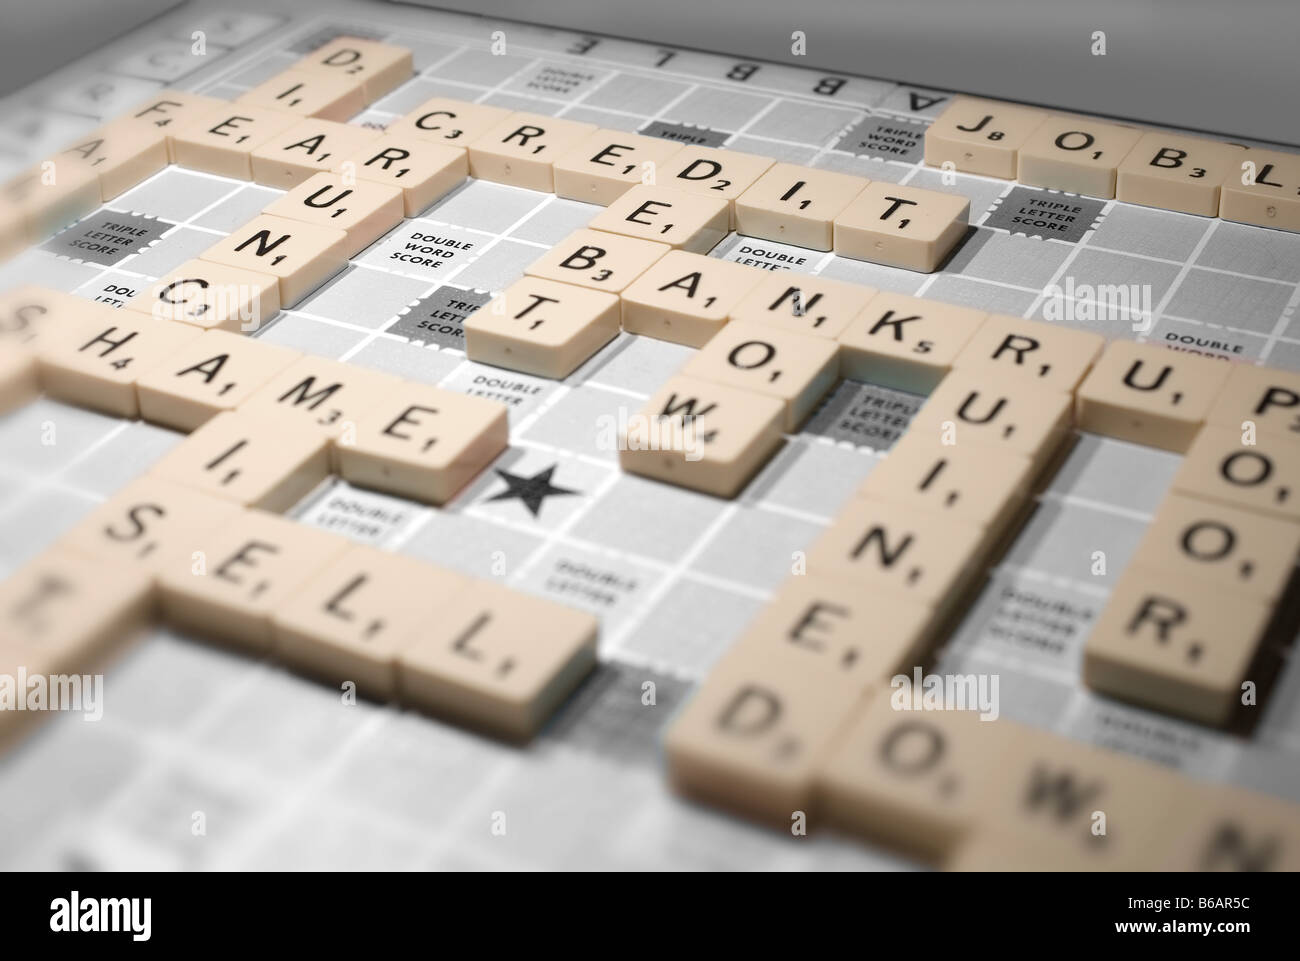 A scrabble game highlights global recession issues of the credit crunch and other financial implications - Stock Image